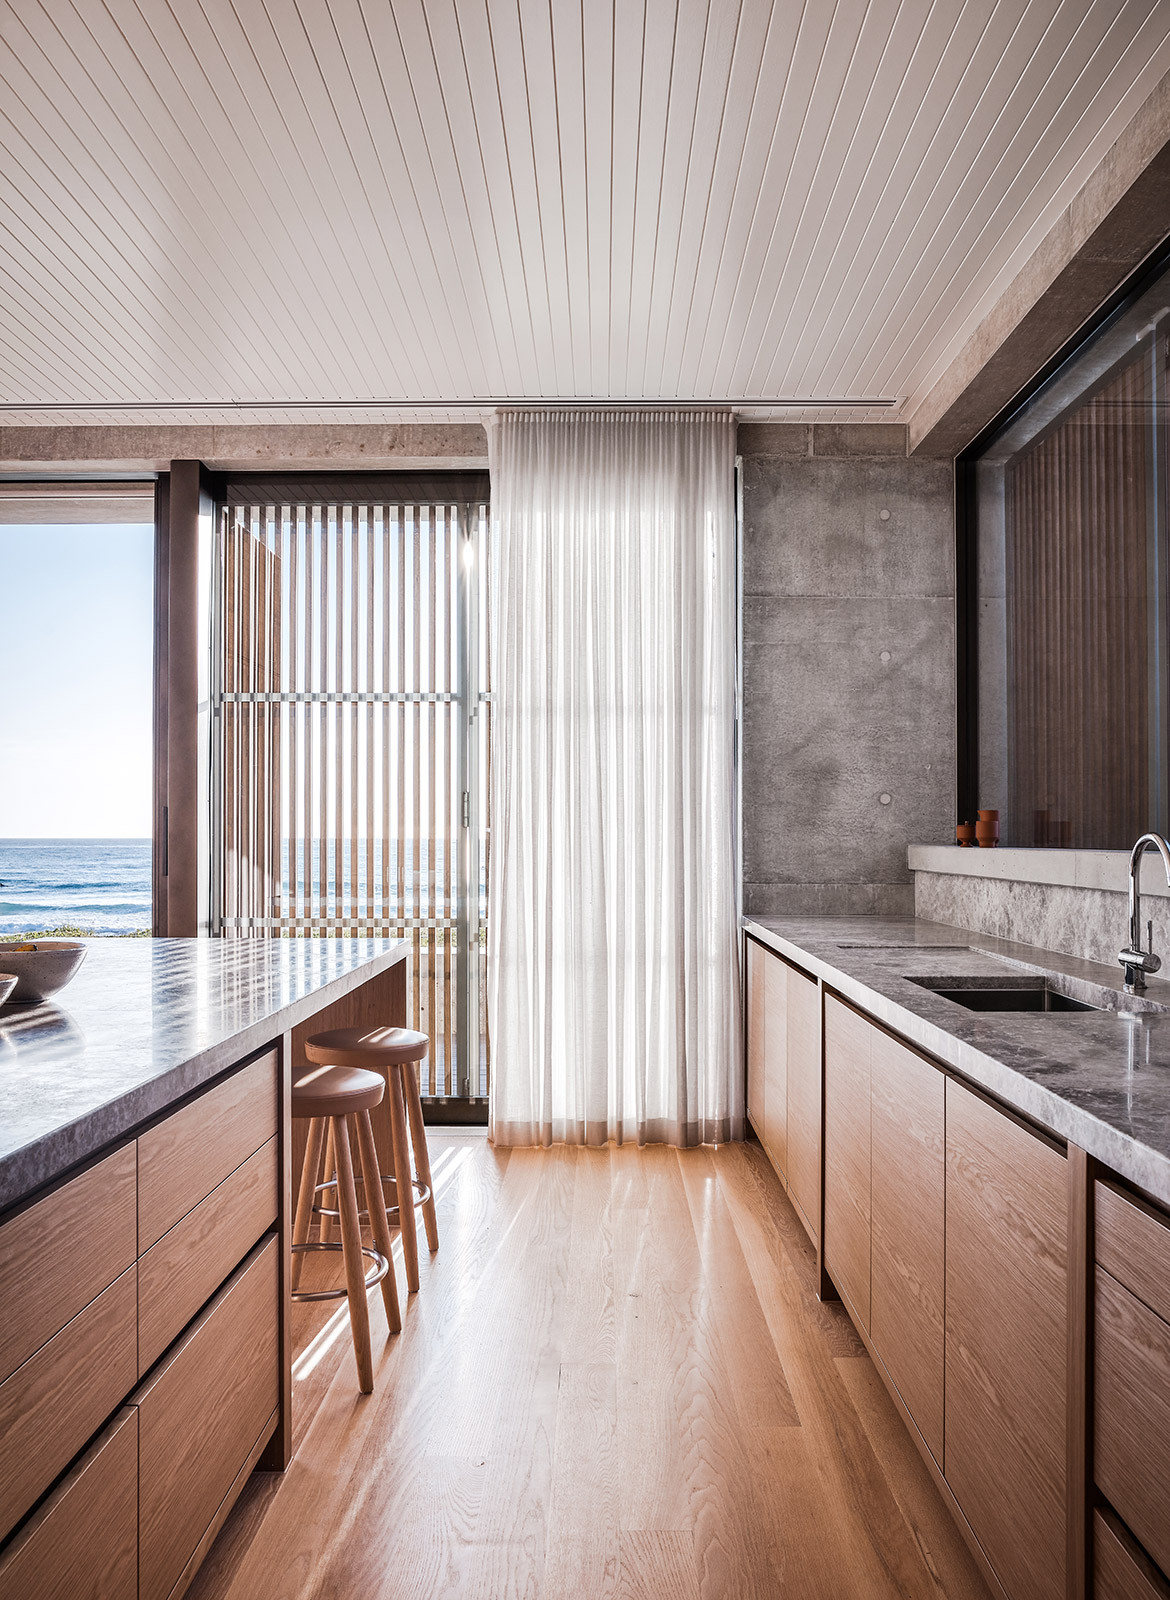 Mermaid Beach Residence B.E Architecture Queenslander Architecture CC Andy MacPherson kitchen bench